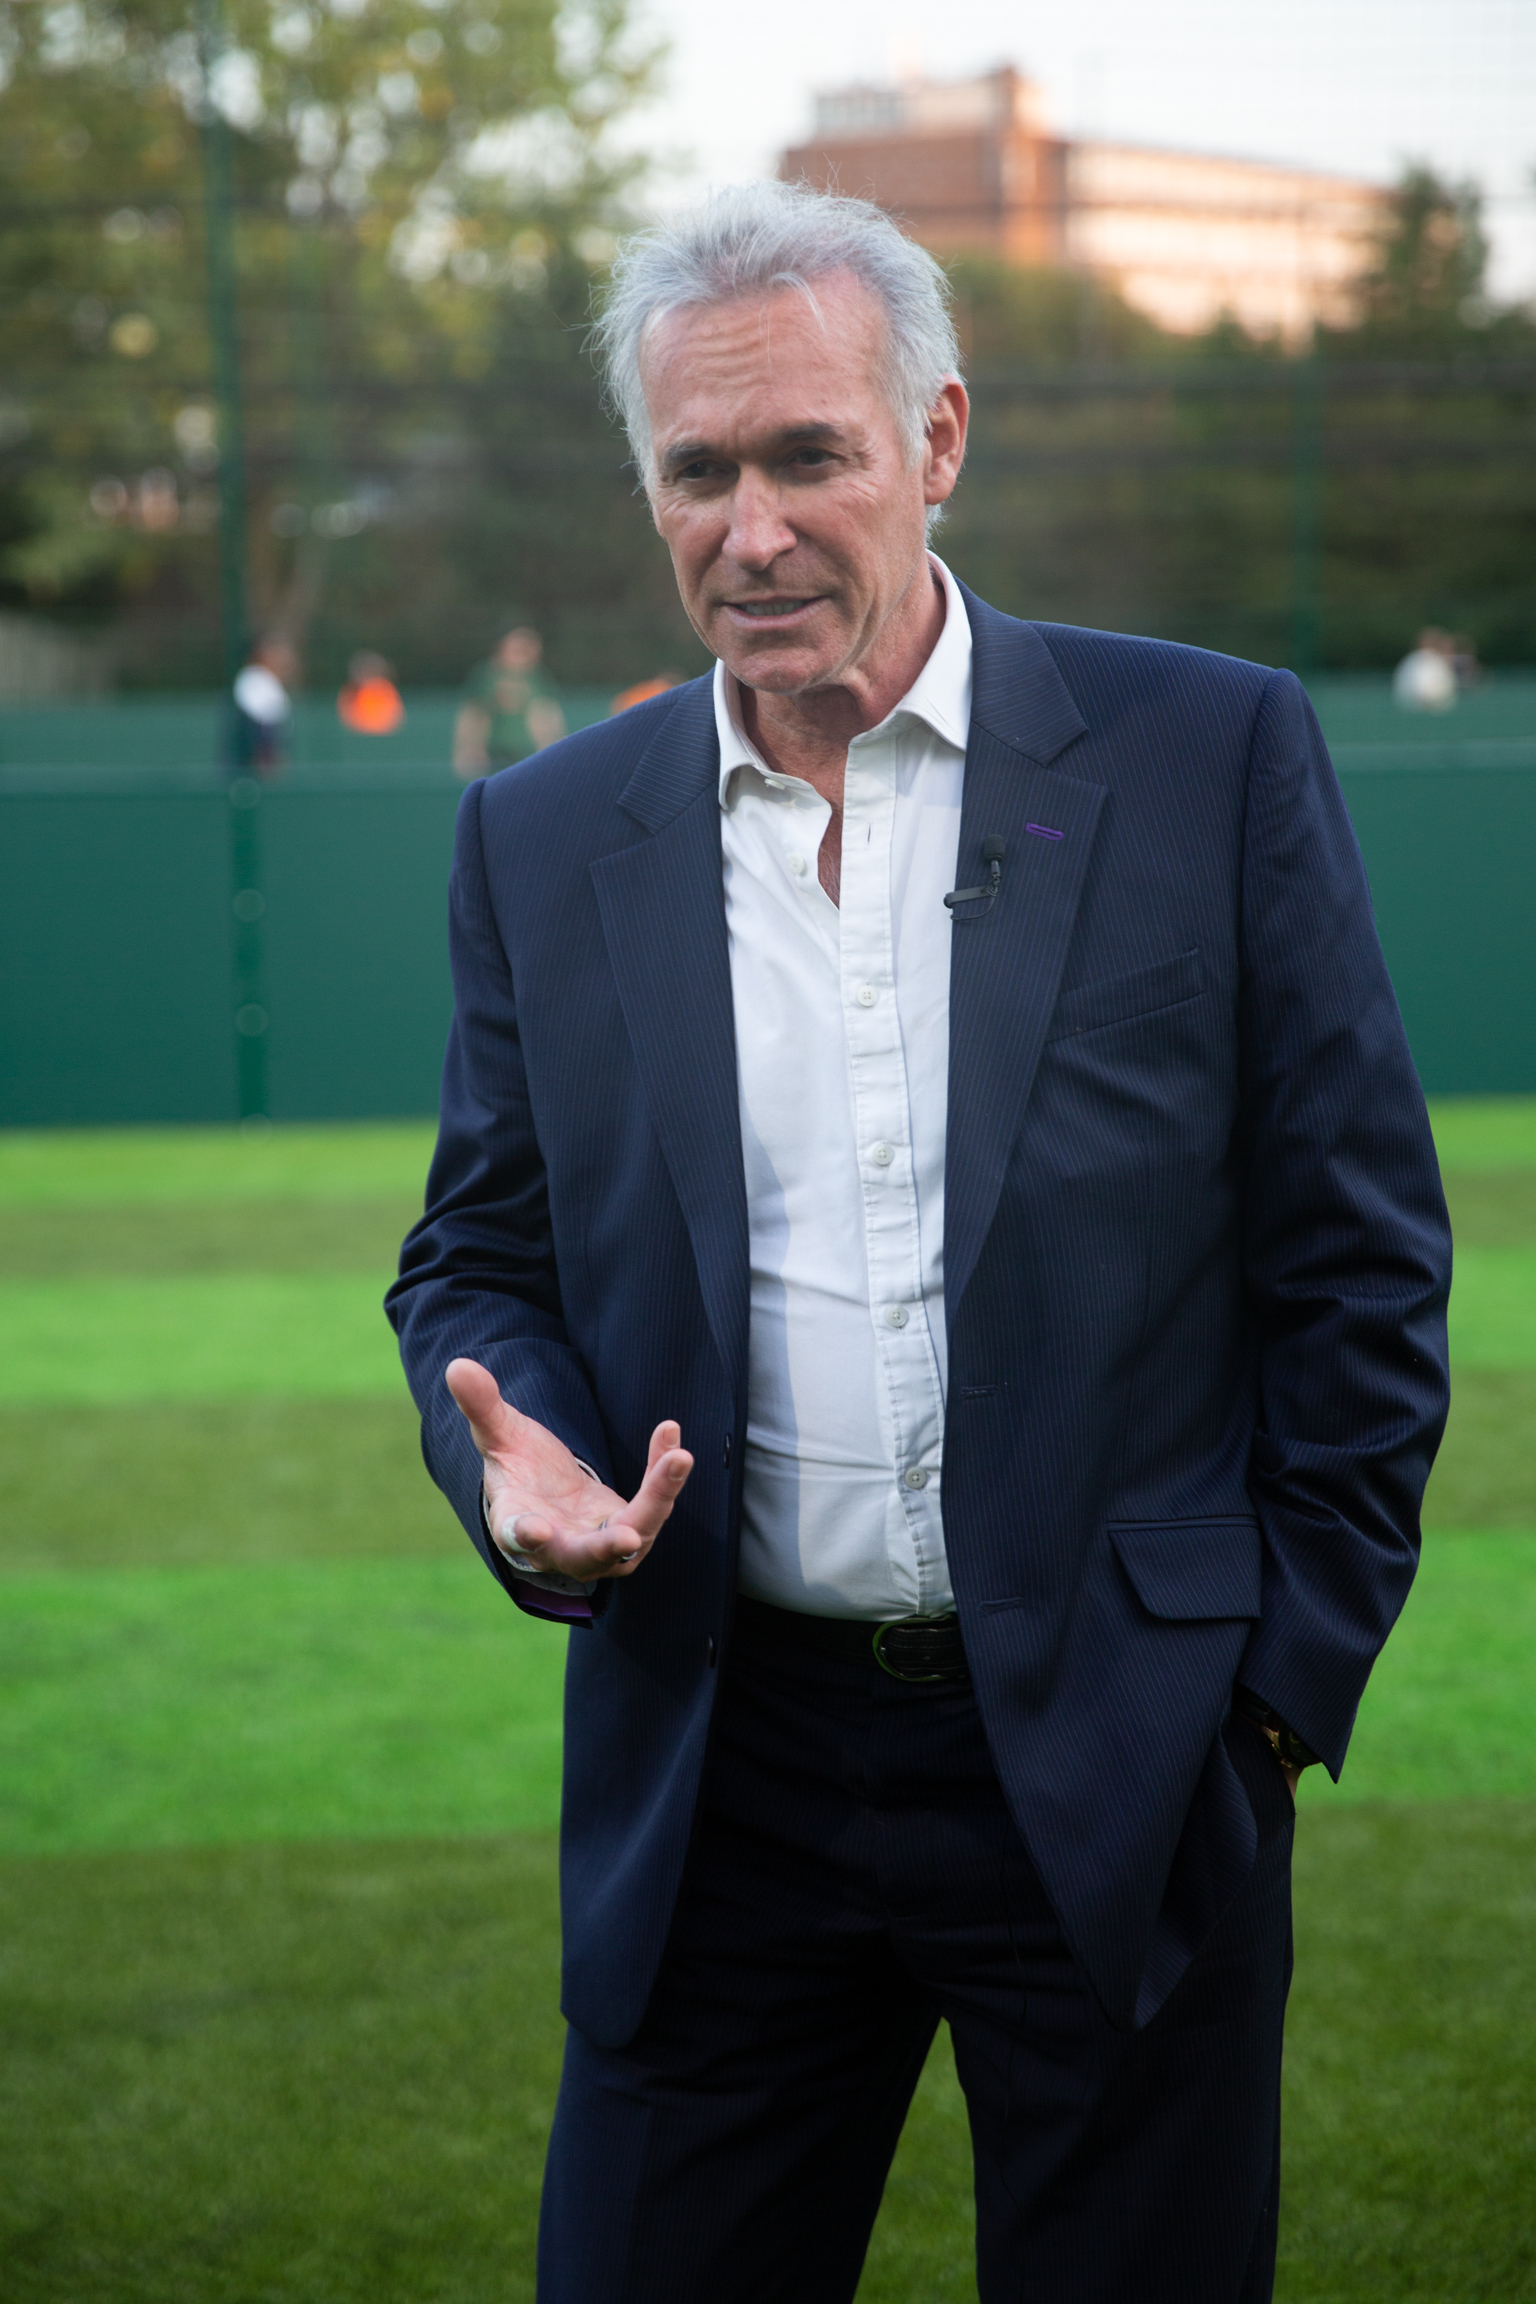 POWERLEAGUE SCORES SUPPORT OF DR HILARY JONES AS HE PROMOTES PHYSICAL AND MENTAL BENEFITS OF 5-A-SIDE • Breakfast TV doctor advocated the huge benefits of small-sided football as, encouraging participation too help combat adverse effects of pandemic